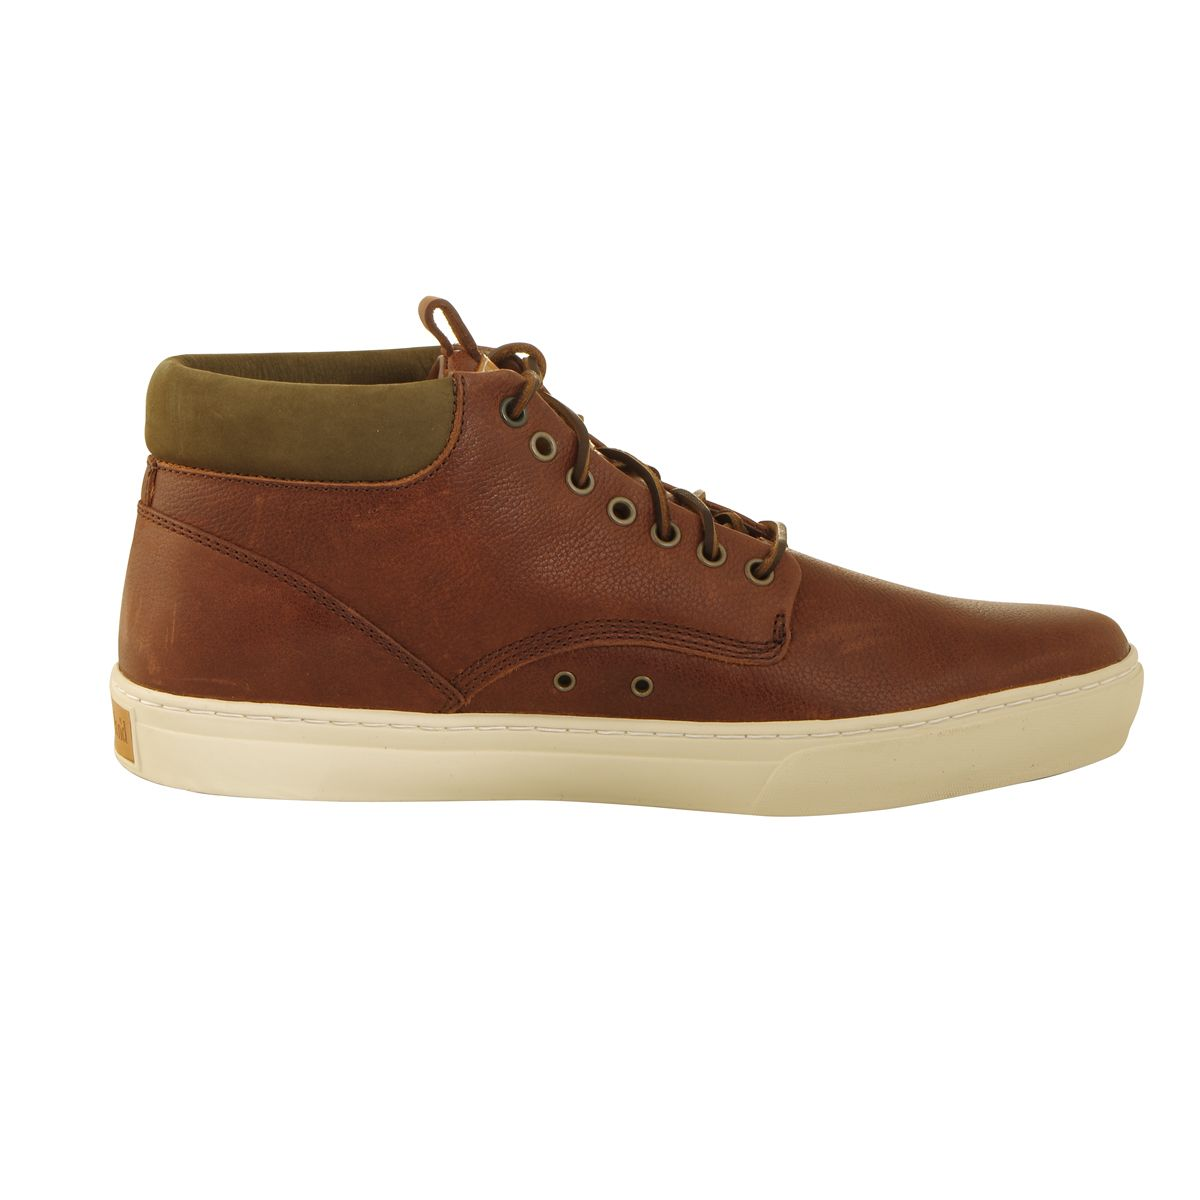 Chaussures Timberland Elles Grand Taillent Les dCfwHdq